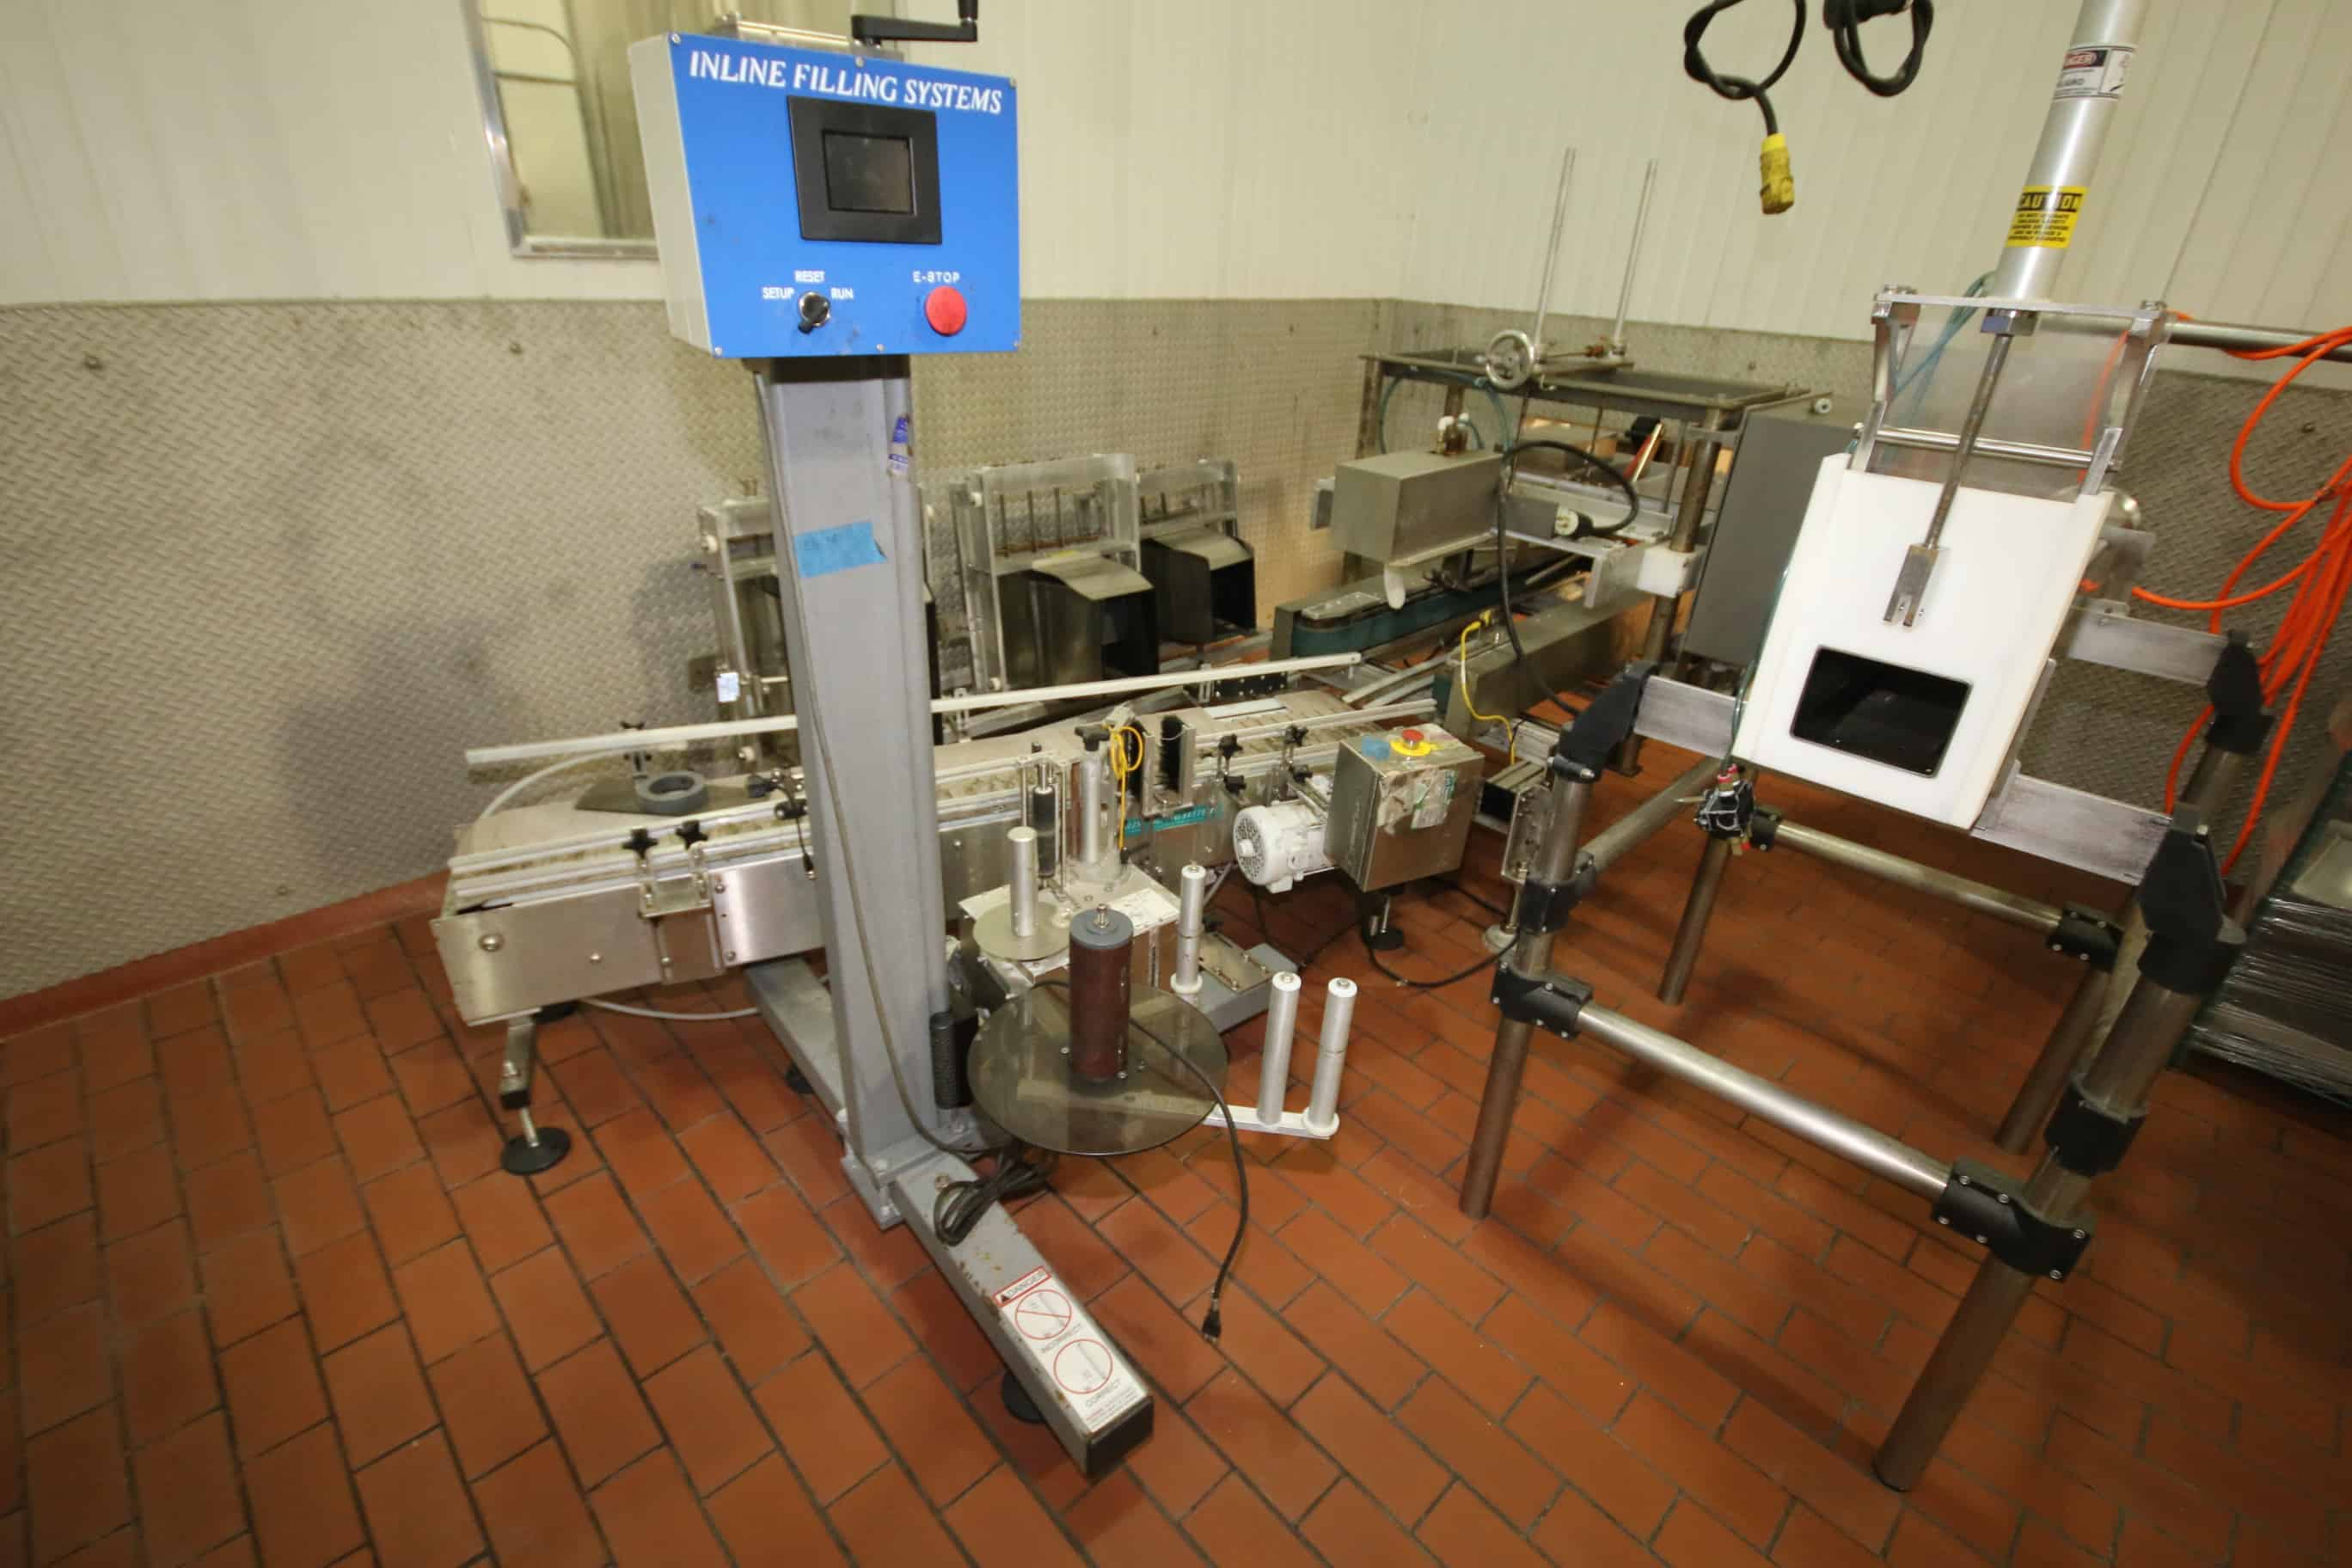 (2) Inline Filling System Pressure Sensitive Labelers